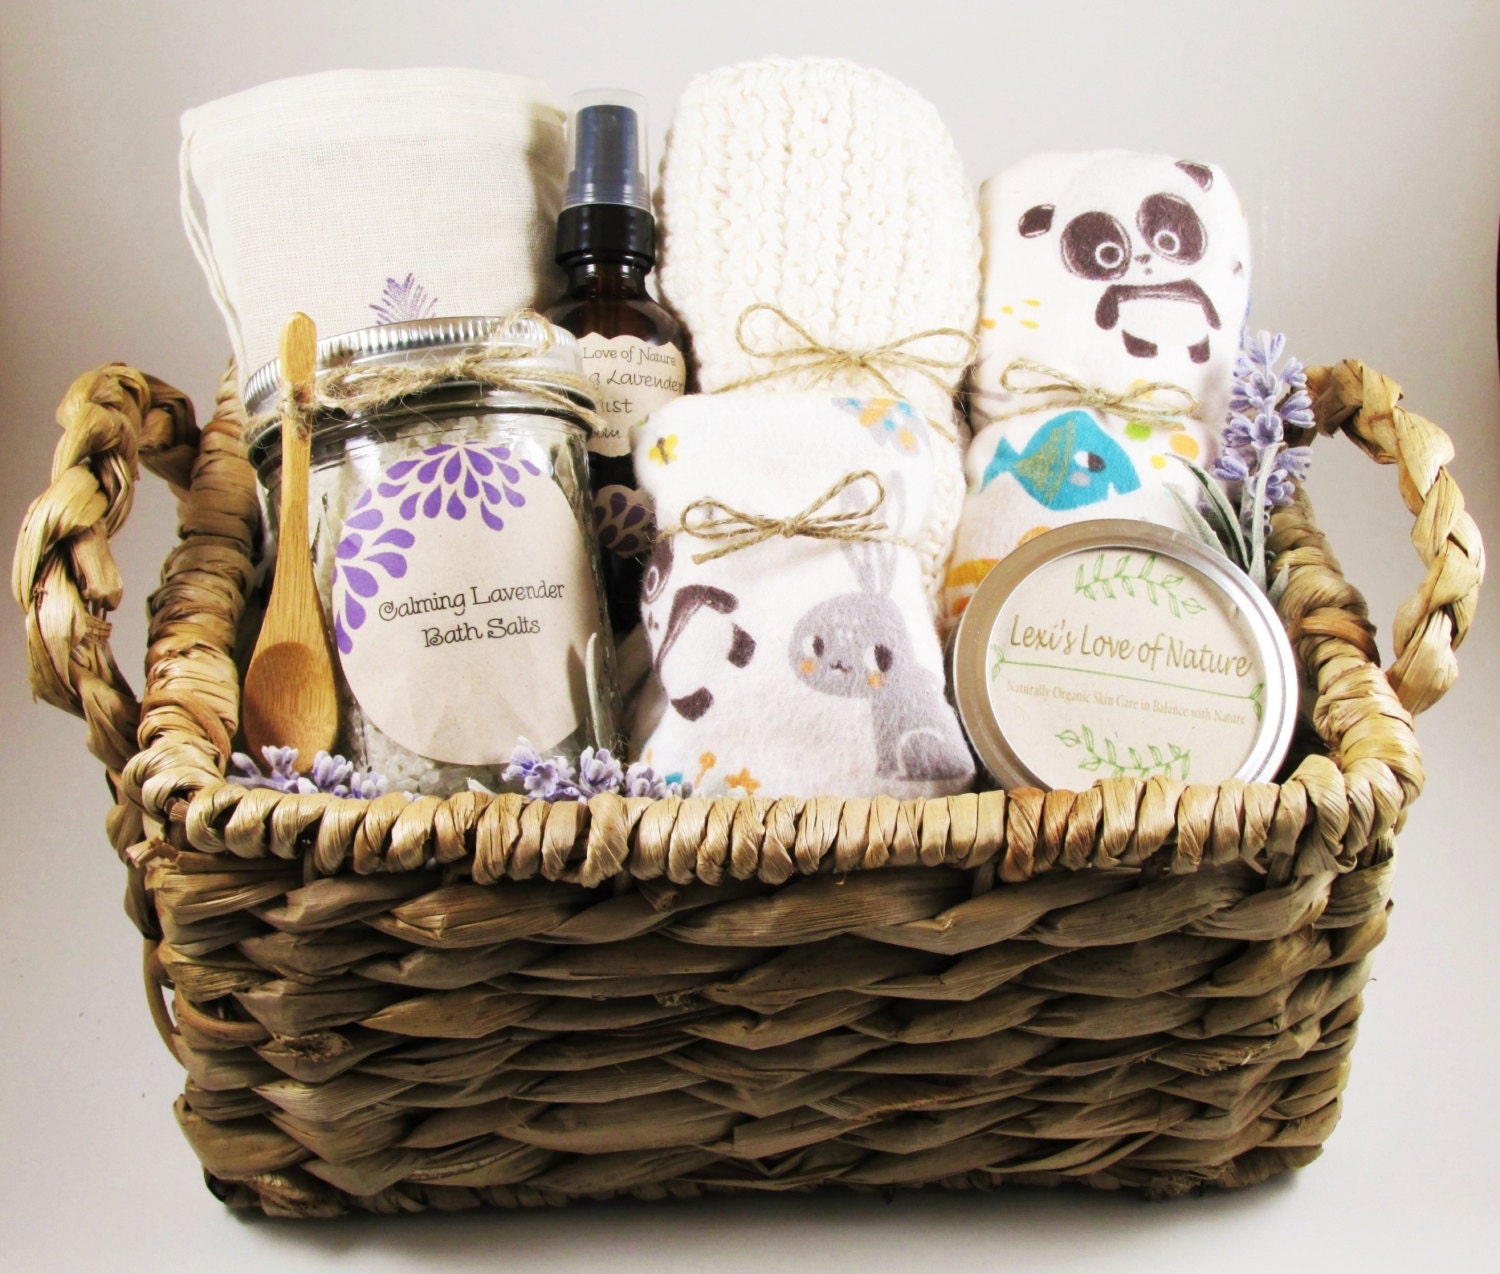 Baby Gifts For New Moms : Gift for new mom and baby basket